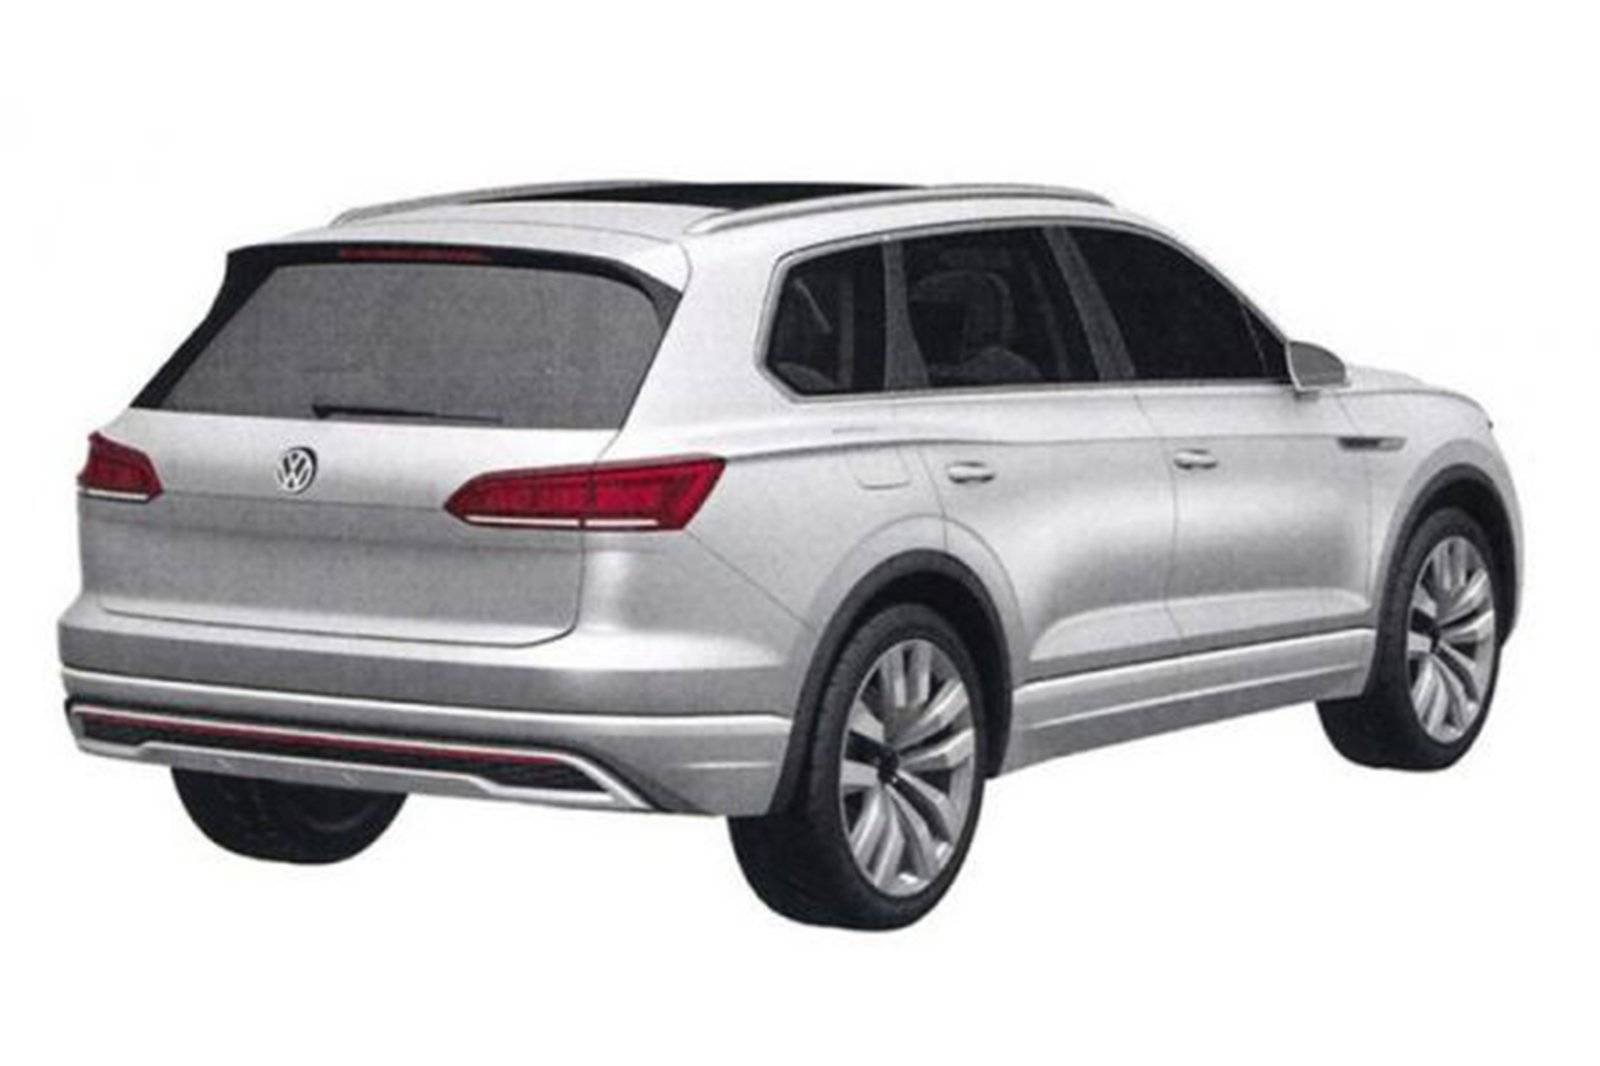 nieuwe volkswagen touareg duikt op autonieuws. Black Bedroom Furniture Sets. Home Design Ideas